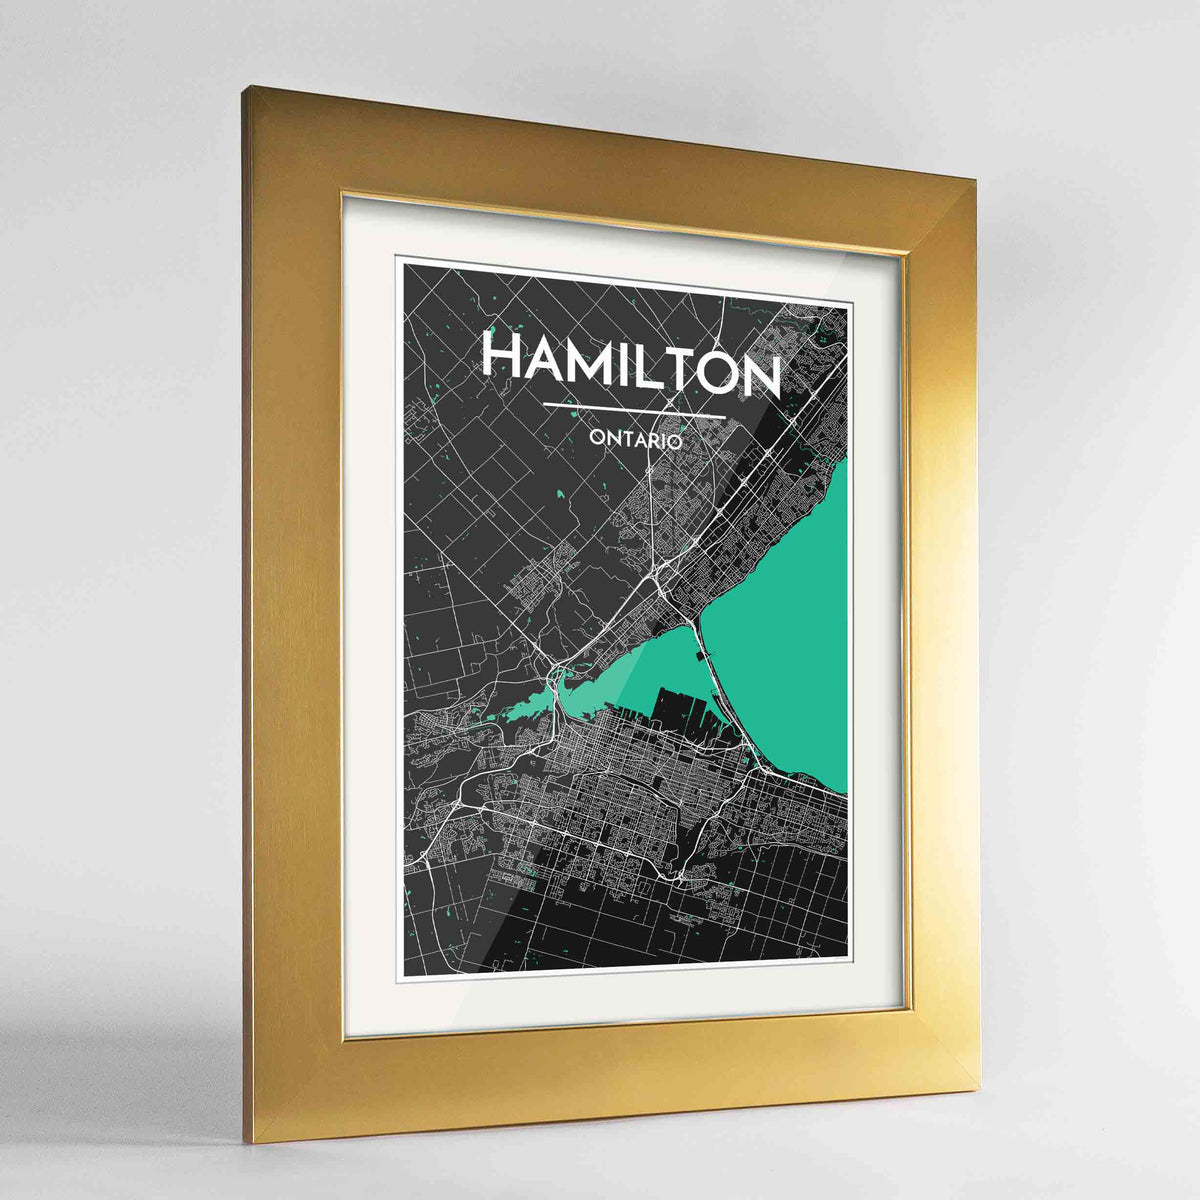 "Framed Hamilton City Map 24x36"" Gold frame Point Two Design Group"